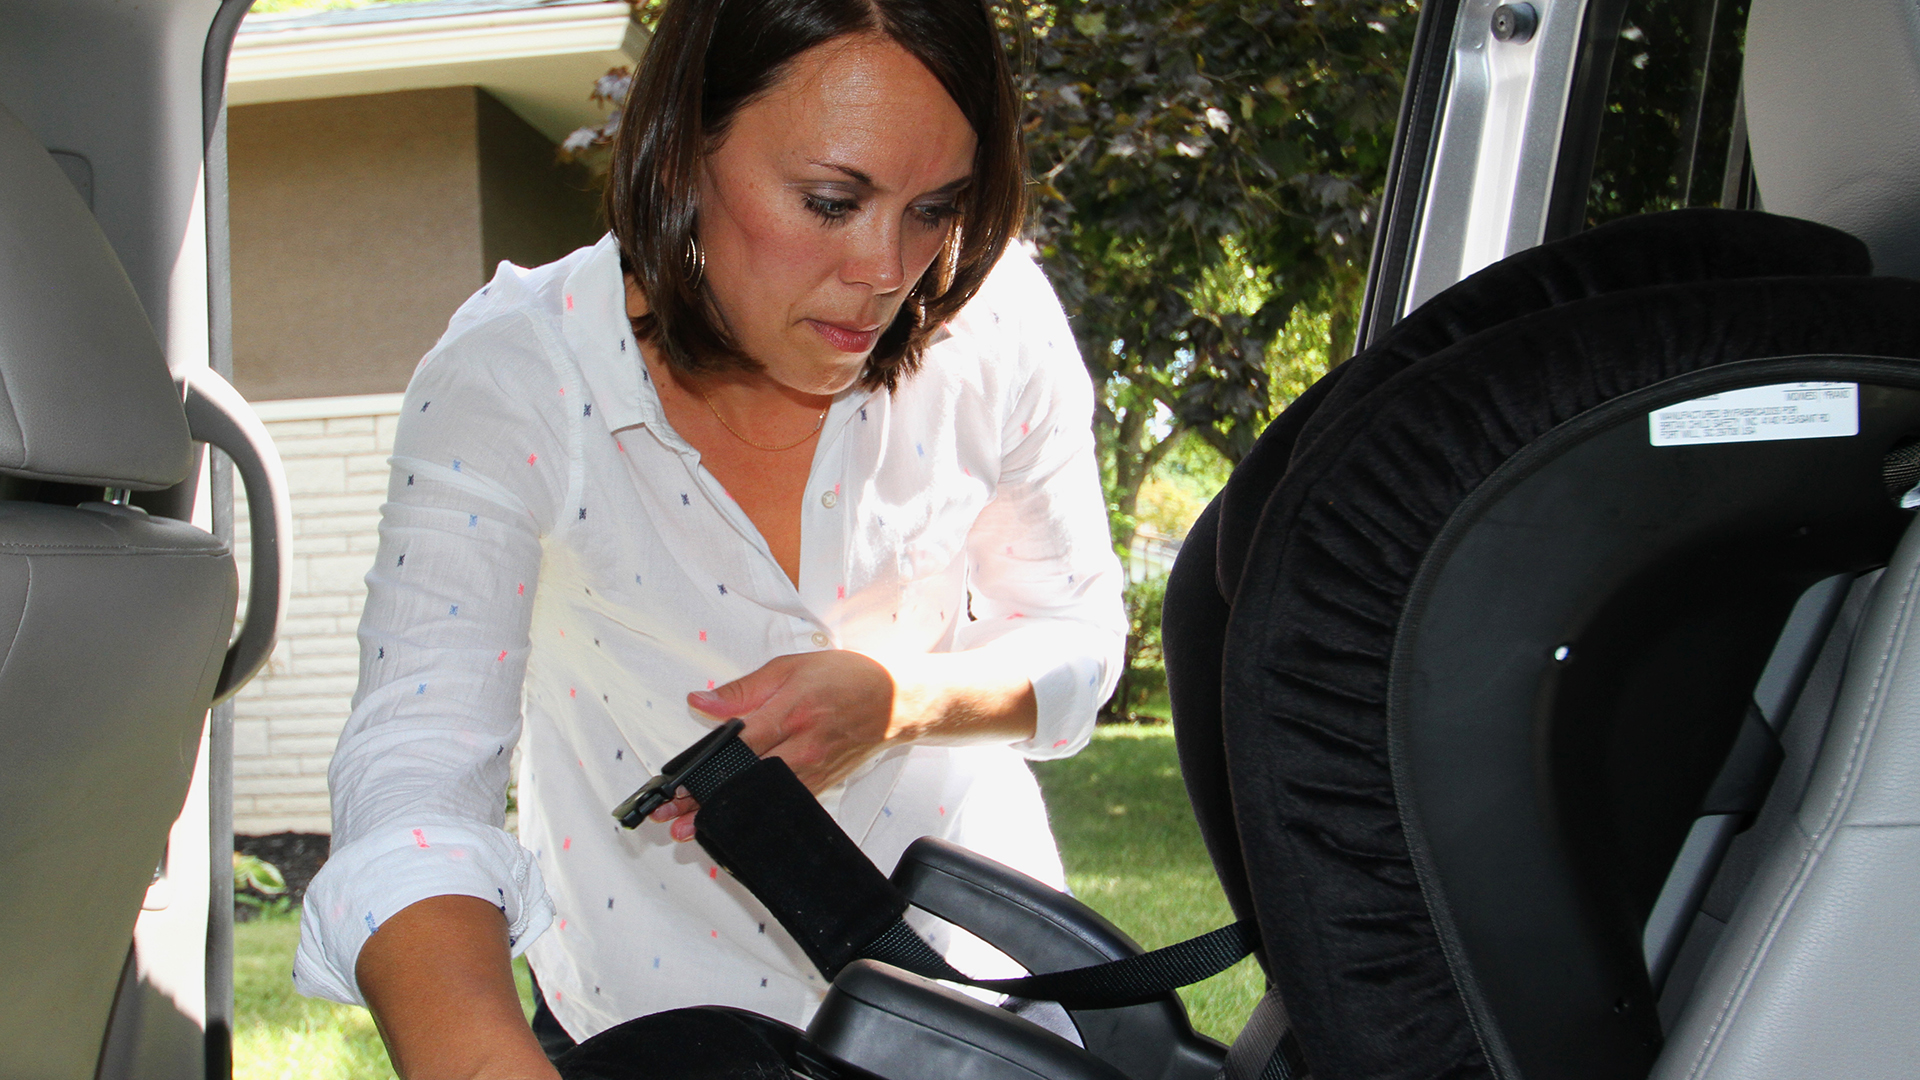 Car Seats Dont Always Fit Properly And Its Not Parents Fault Study Finds